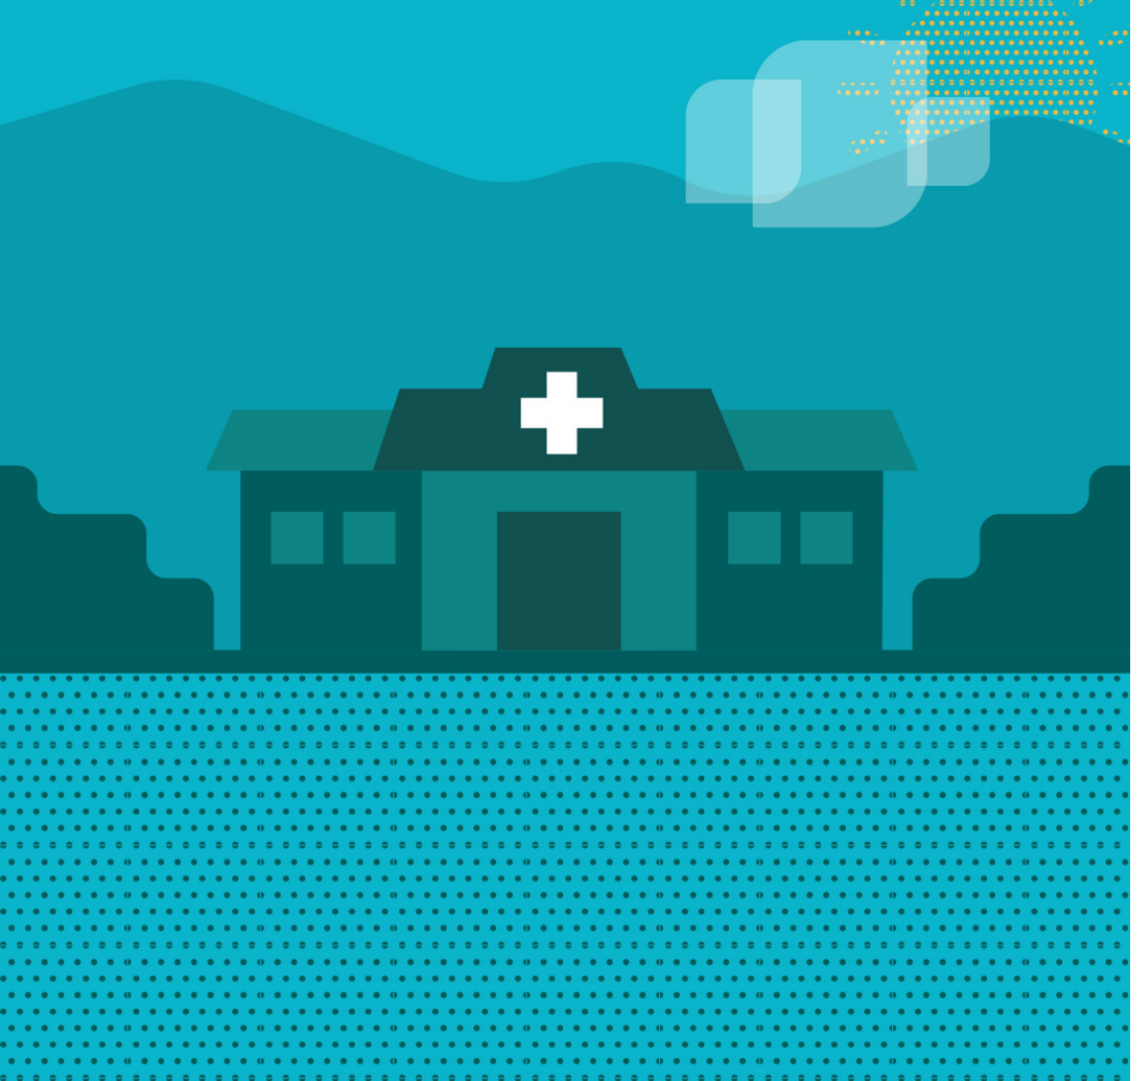 Illustration in shades of green representing a medical facility